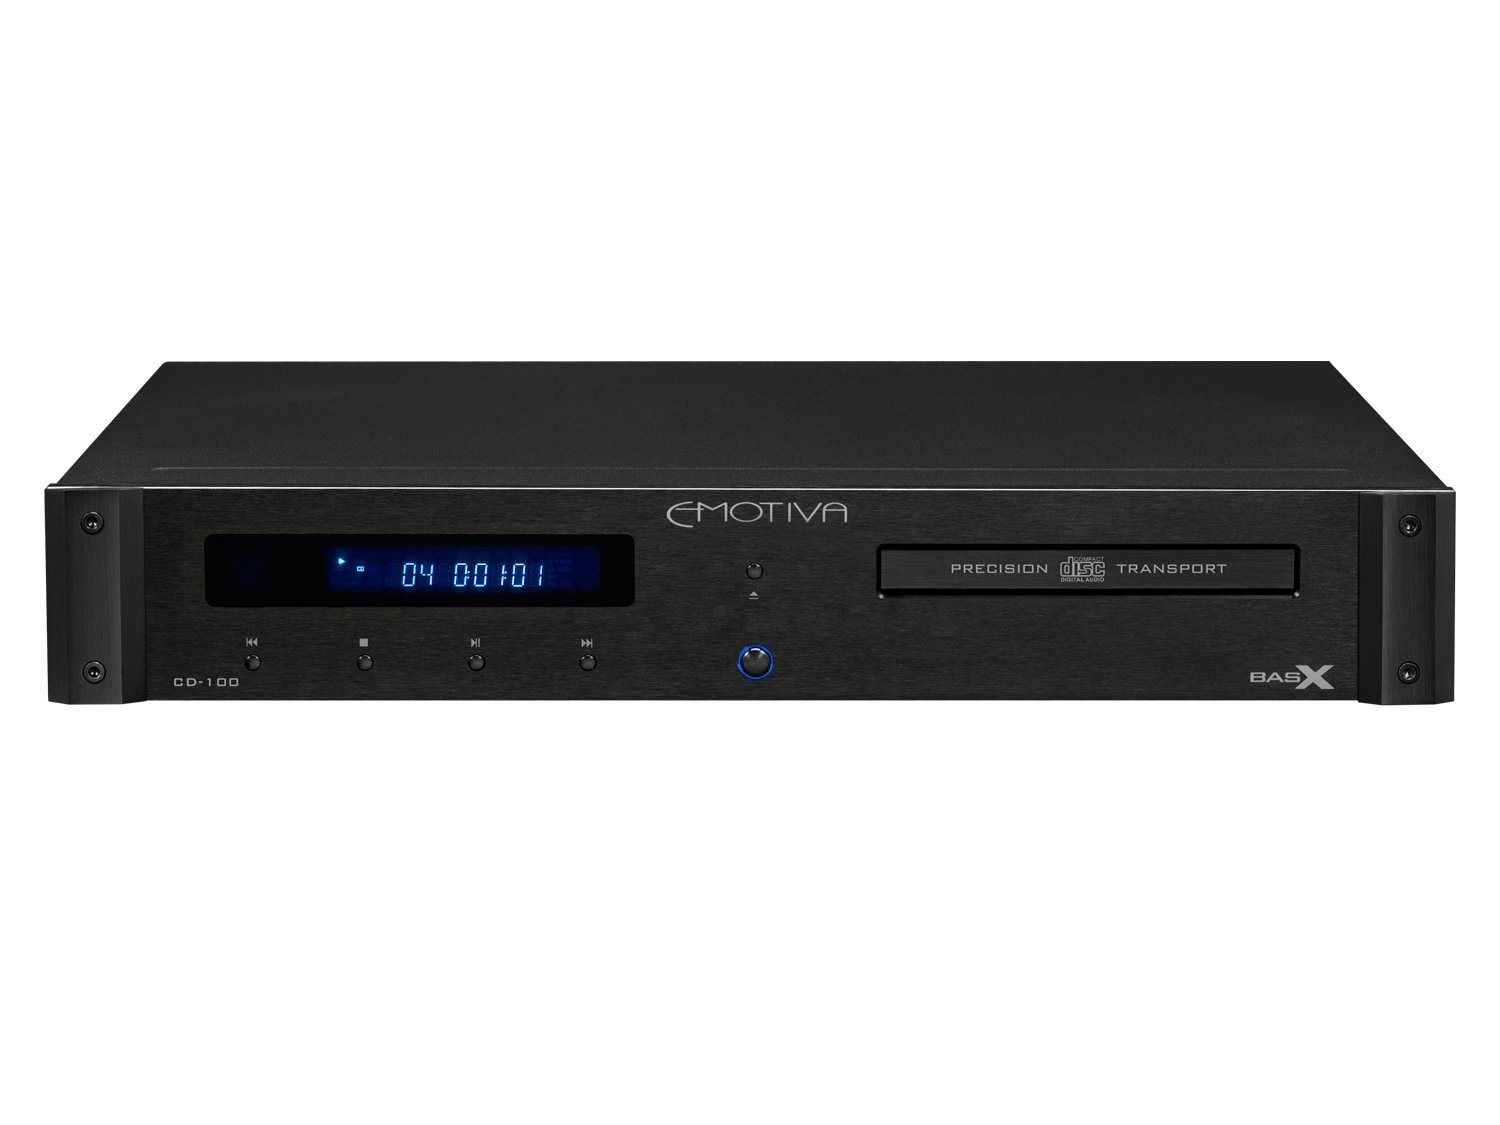 Emotiva Audio Precision Cd Player and Transport Home CD Player Black (CD-100)